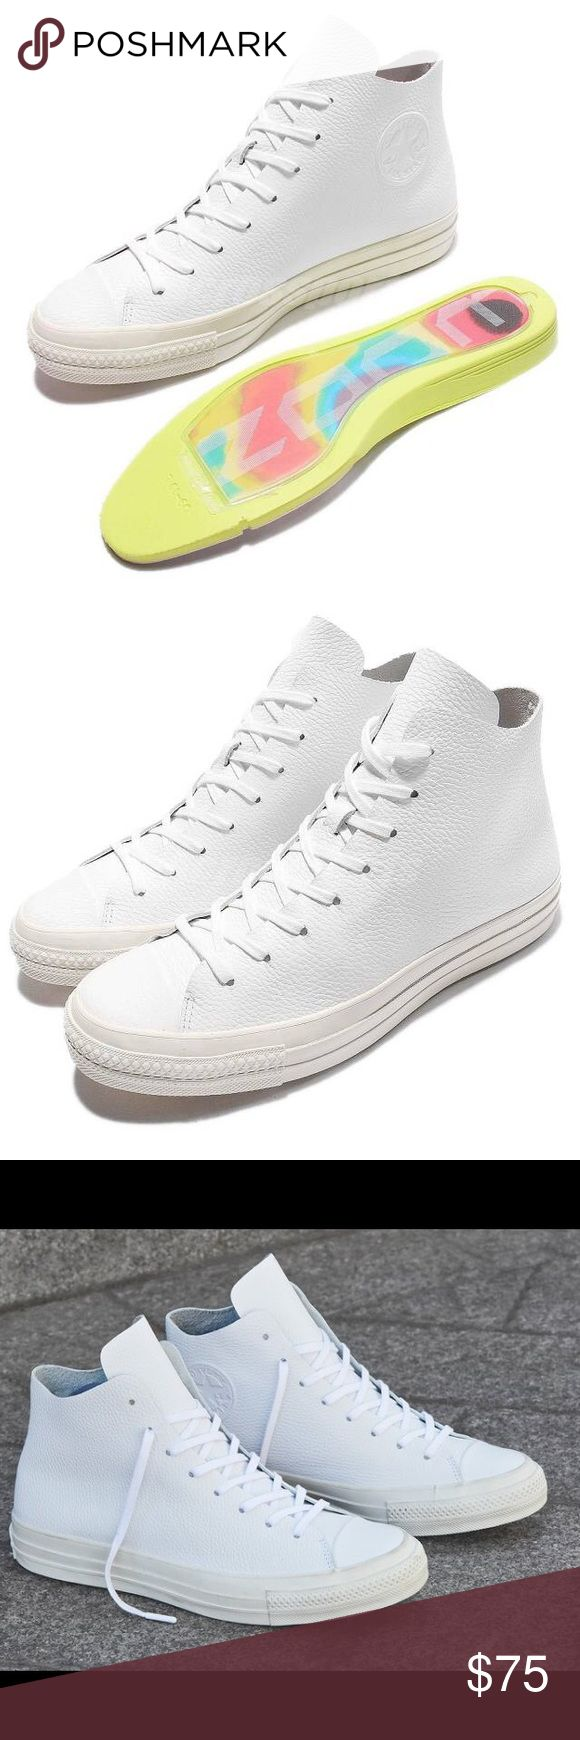 Converse all star Chuck Taylor White Leather shoes Brand new without box Converse Shoes Sneakers